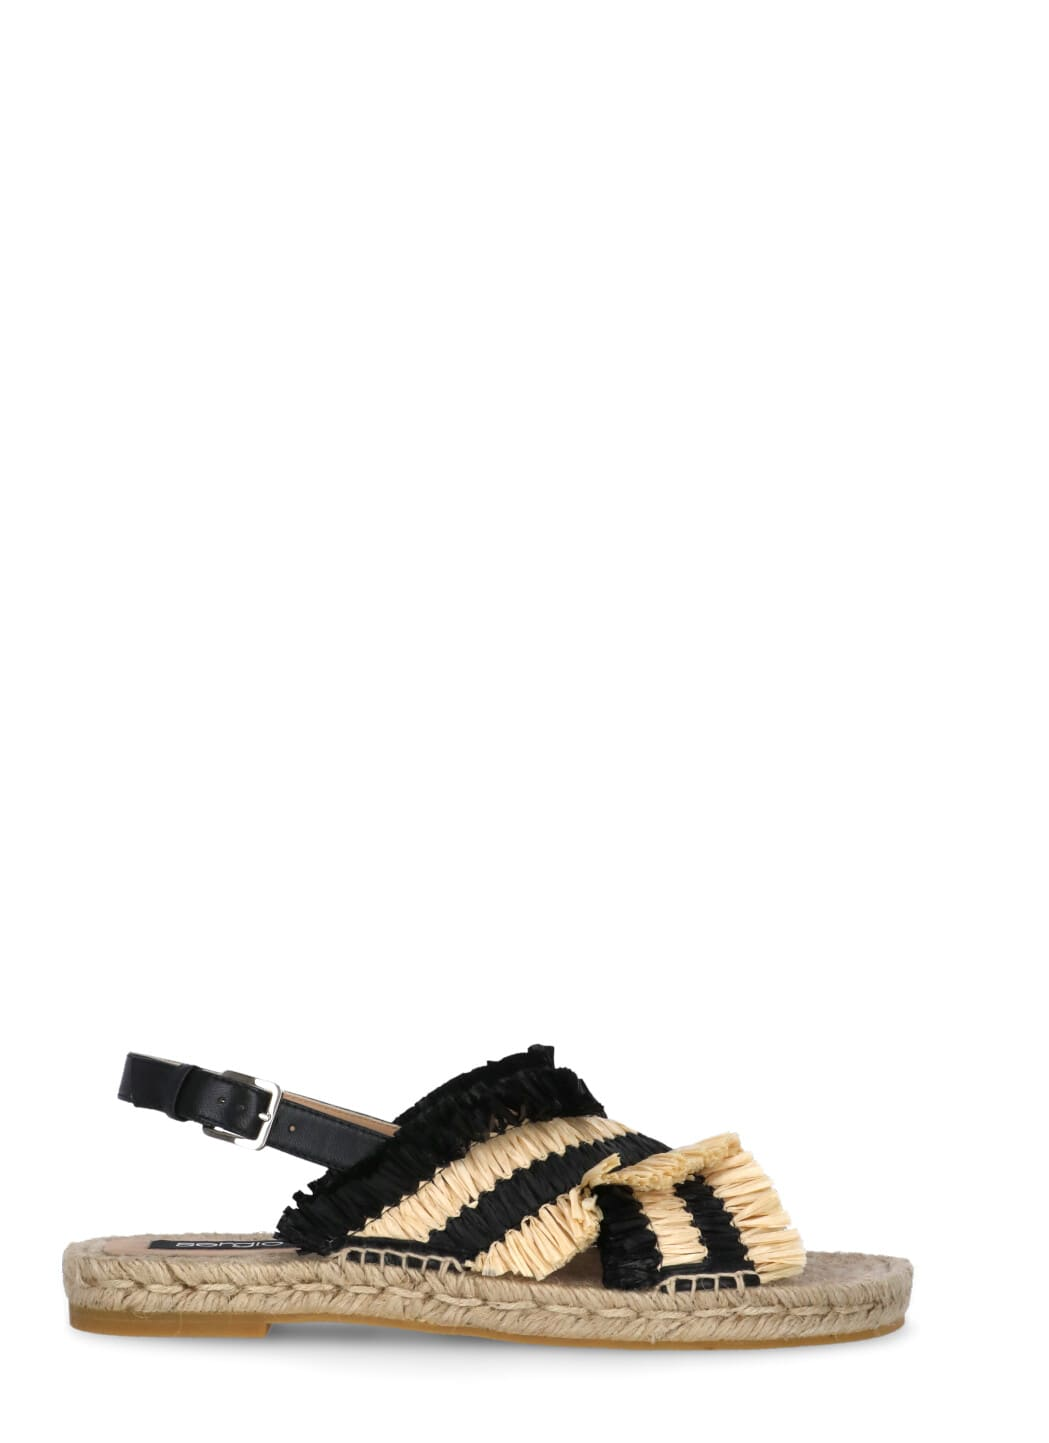 Buy Sergio Rossi Raffia Sandal online, shop Sergio Rossi shoes with free shipping